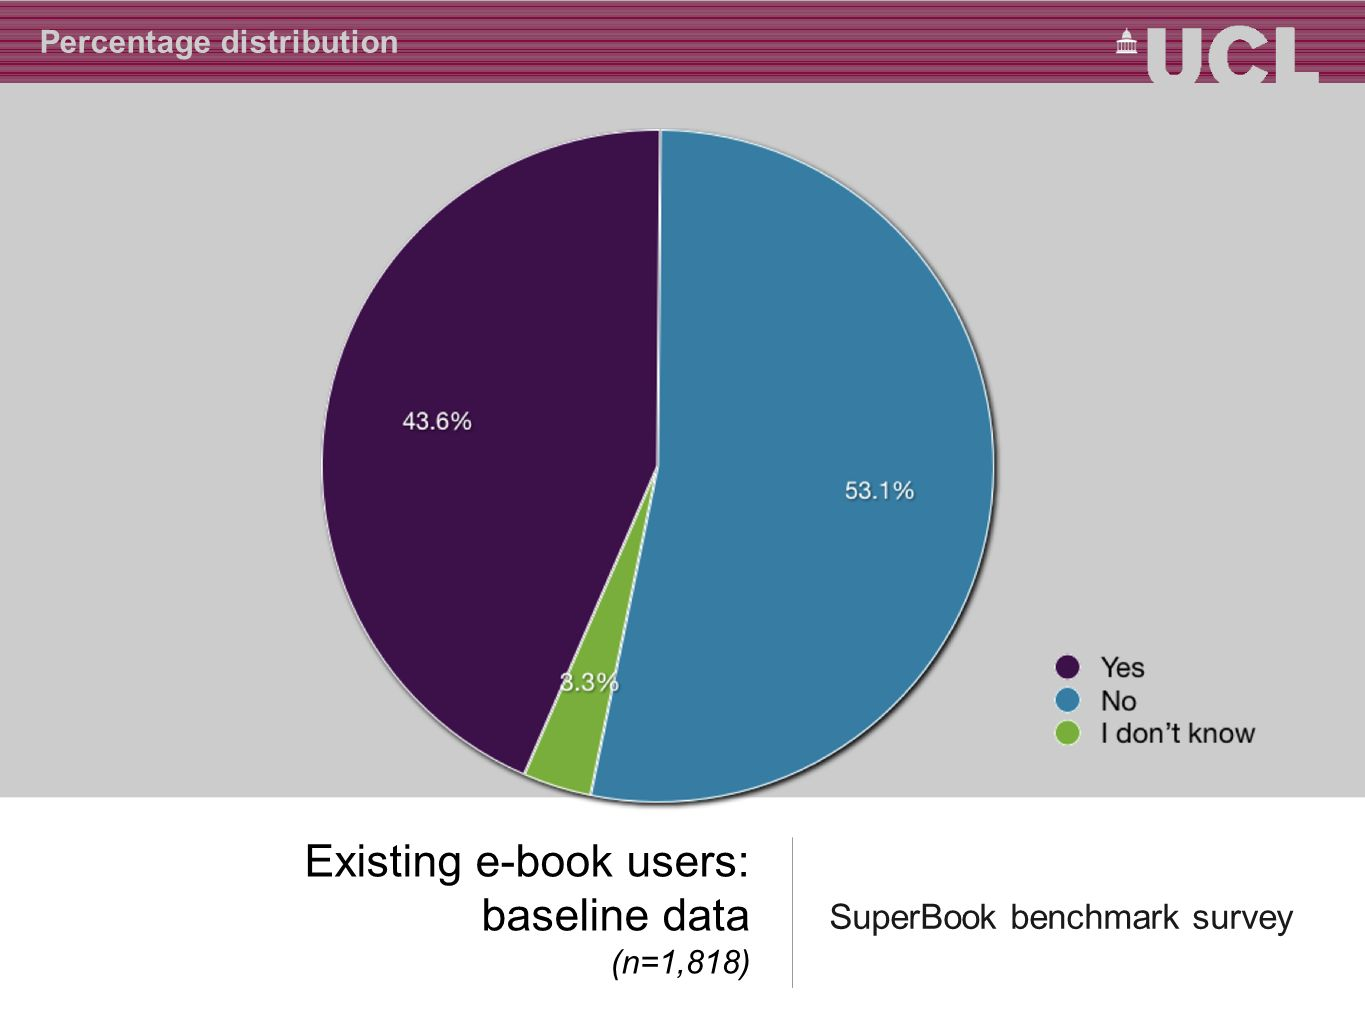 Existing e-book users: baseline data (n=1,818) SuperBook benchmark survey Percentage distribution